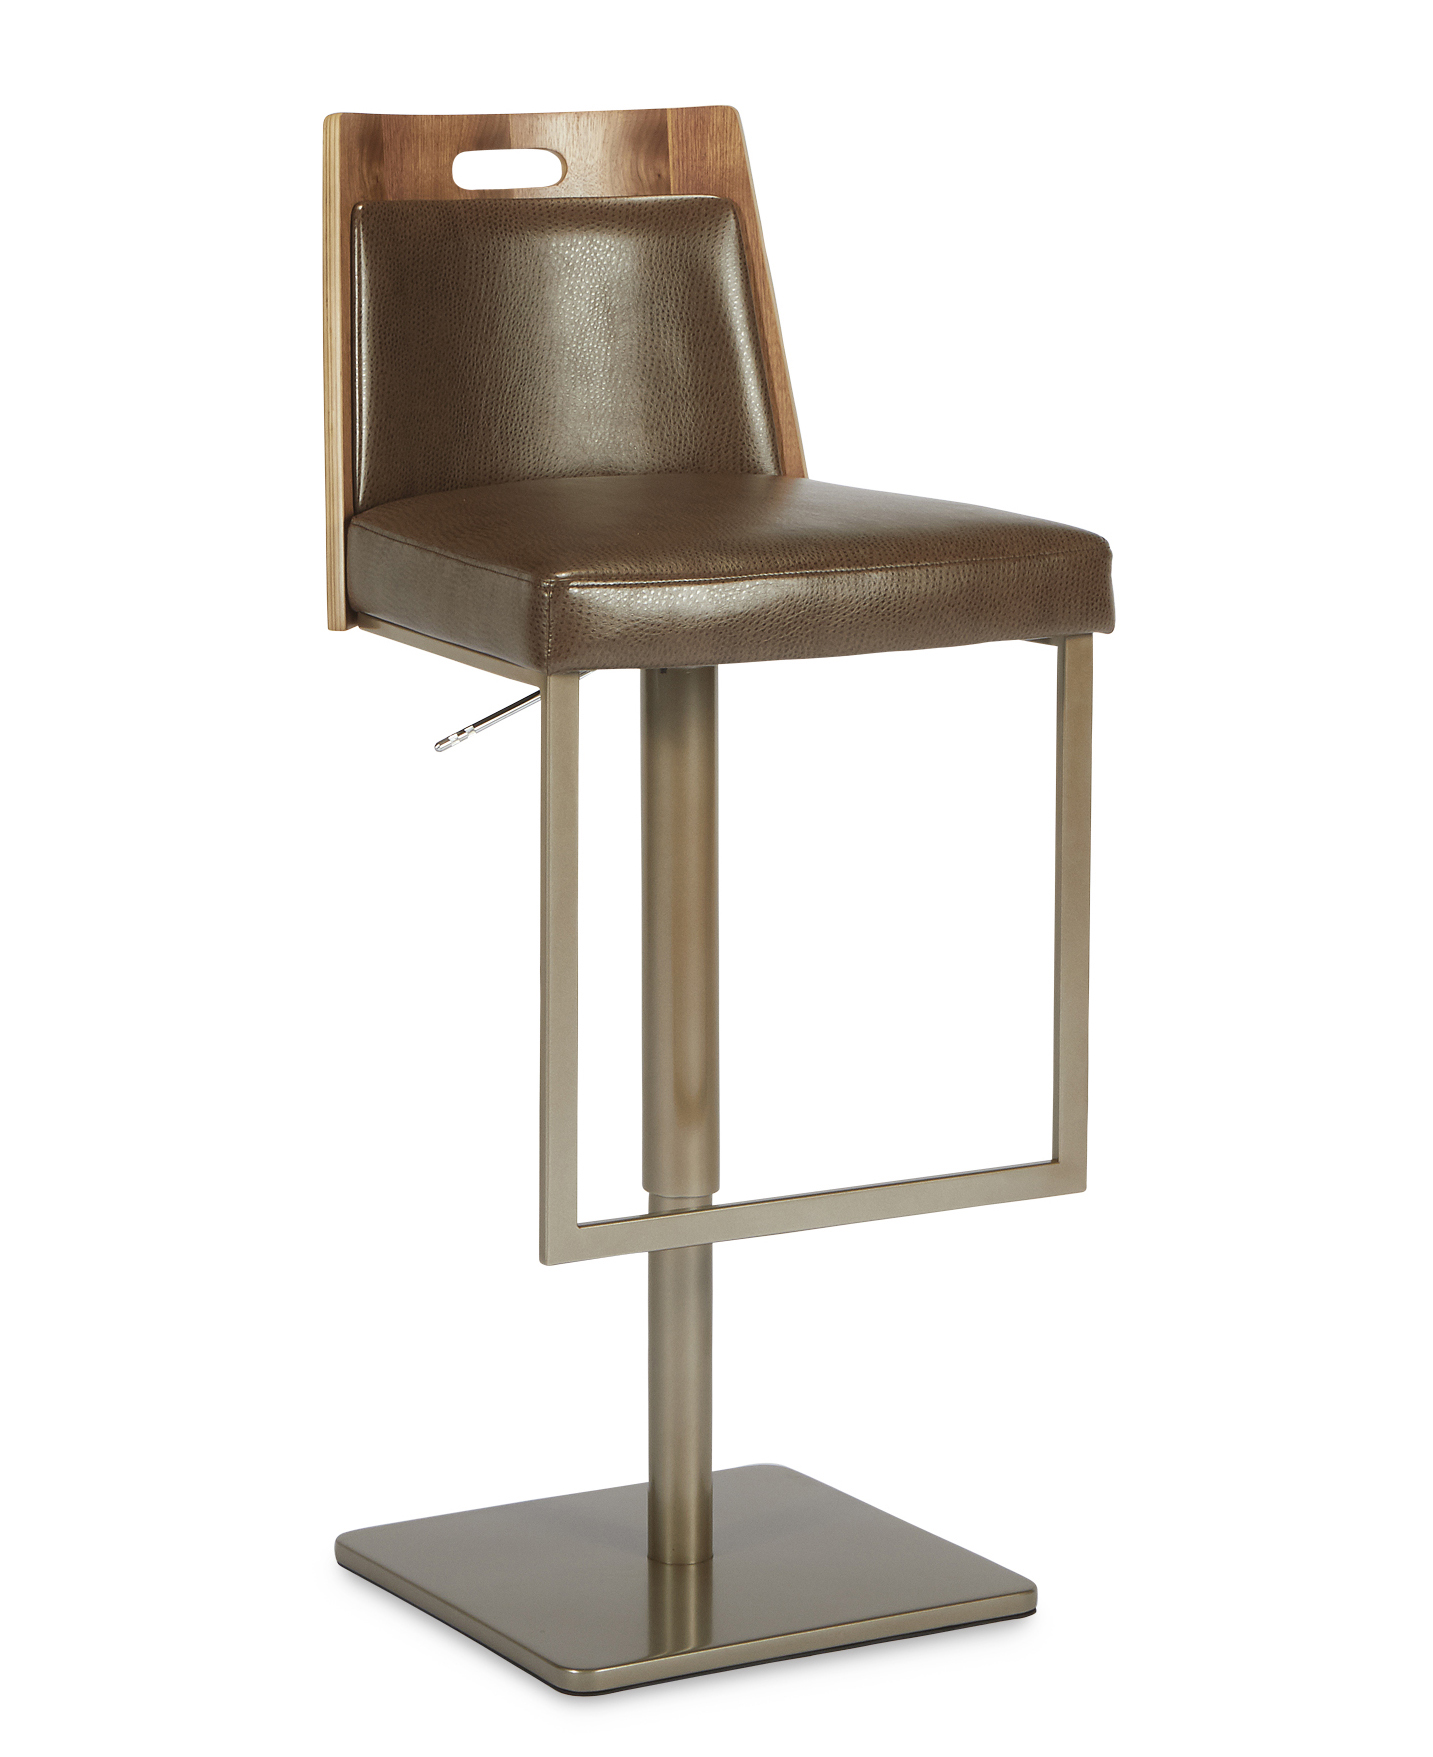 Miraculous Tyler Swivel Bar Stool Dining Room Bar Counter Stools Caraccident5 Cool Chair Designs And Ideas Caraccident5Info